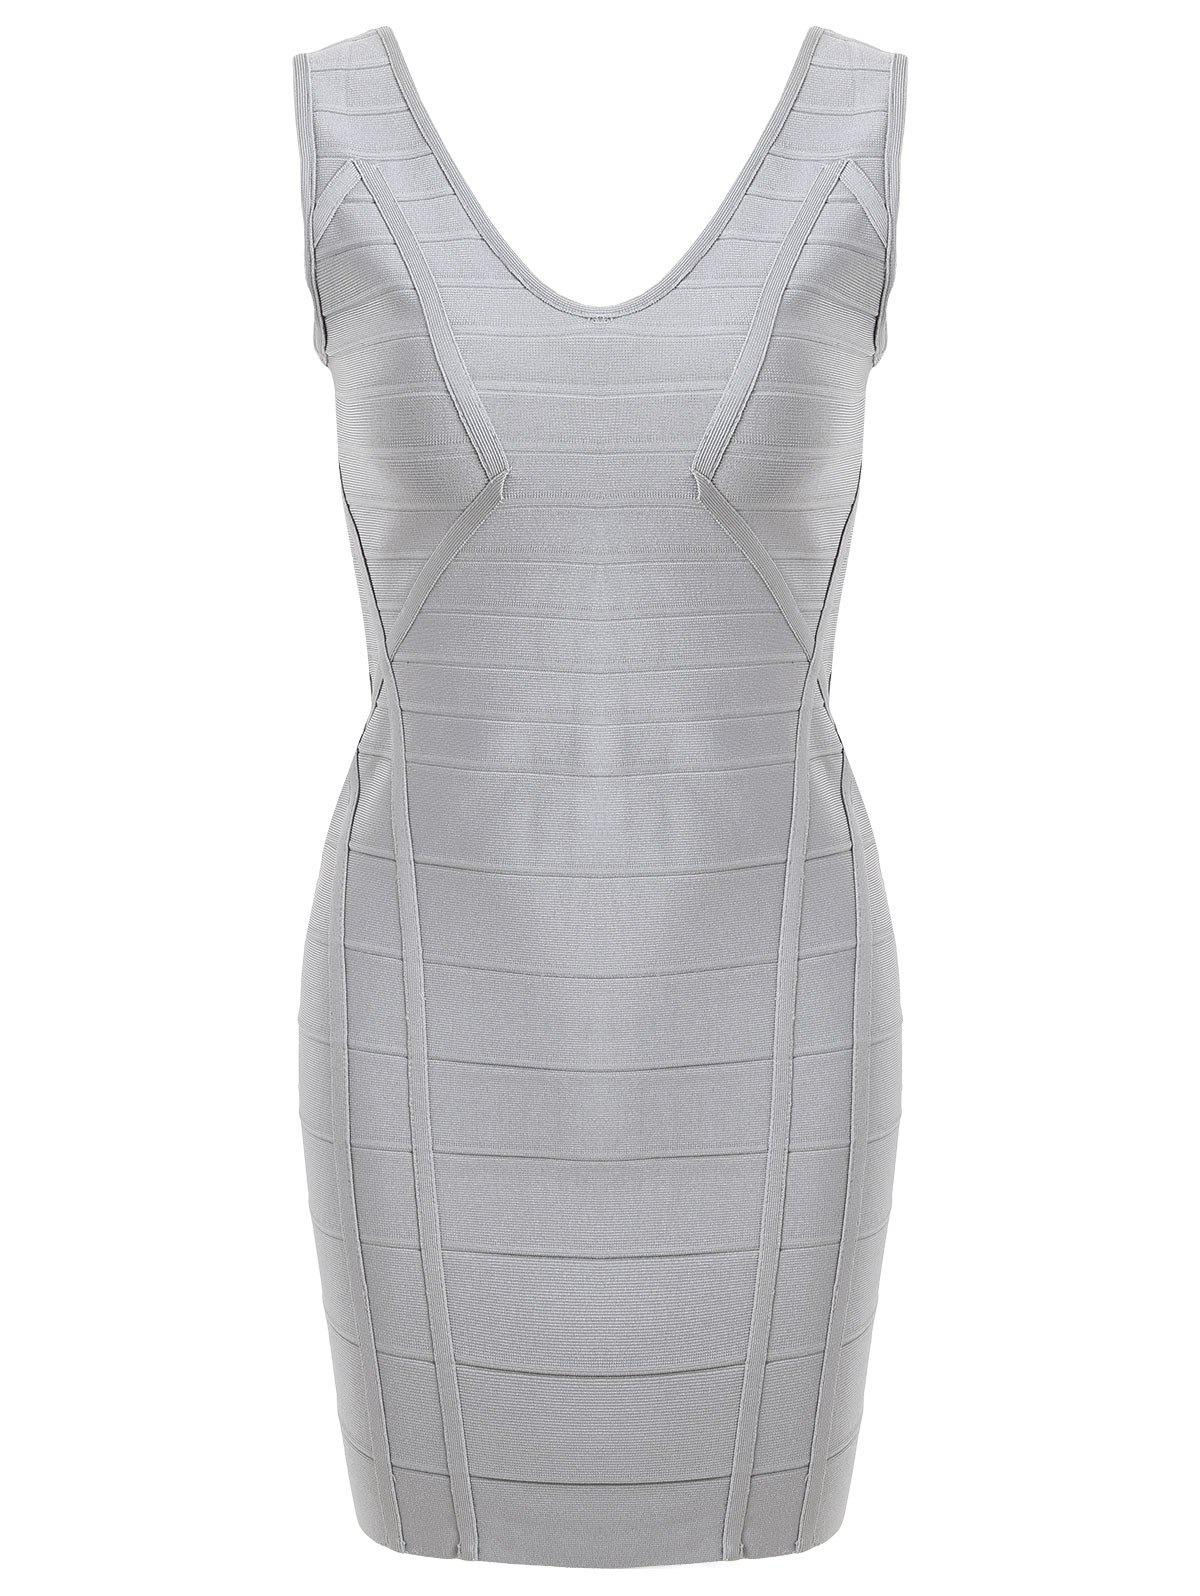 V Neck Sleeveless Bandage Dress - GRAY L